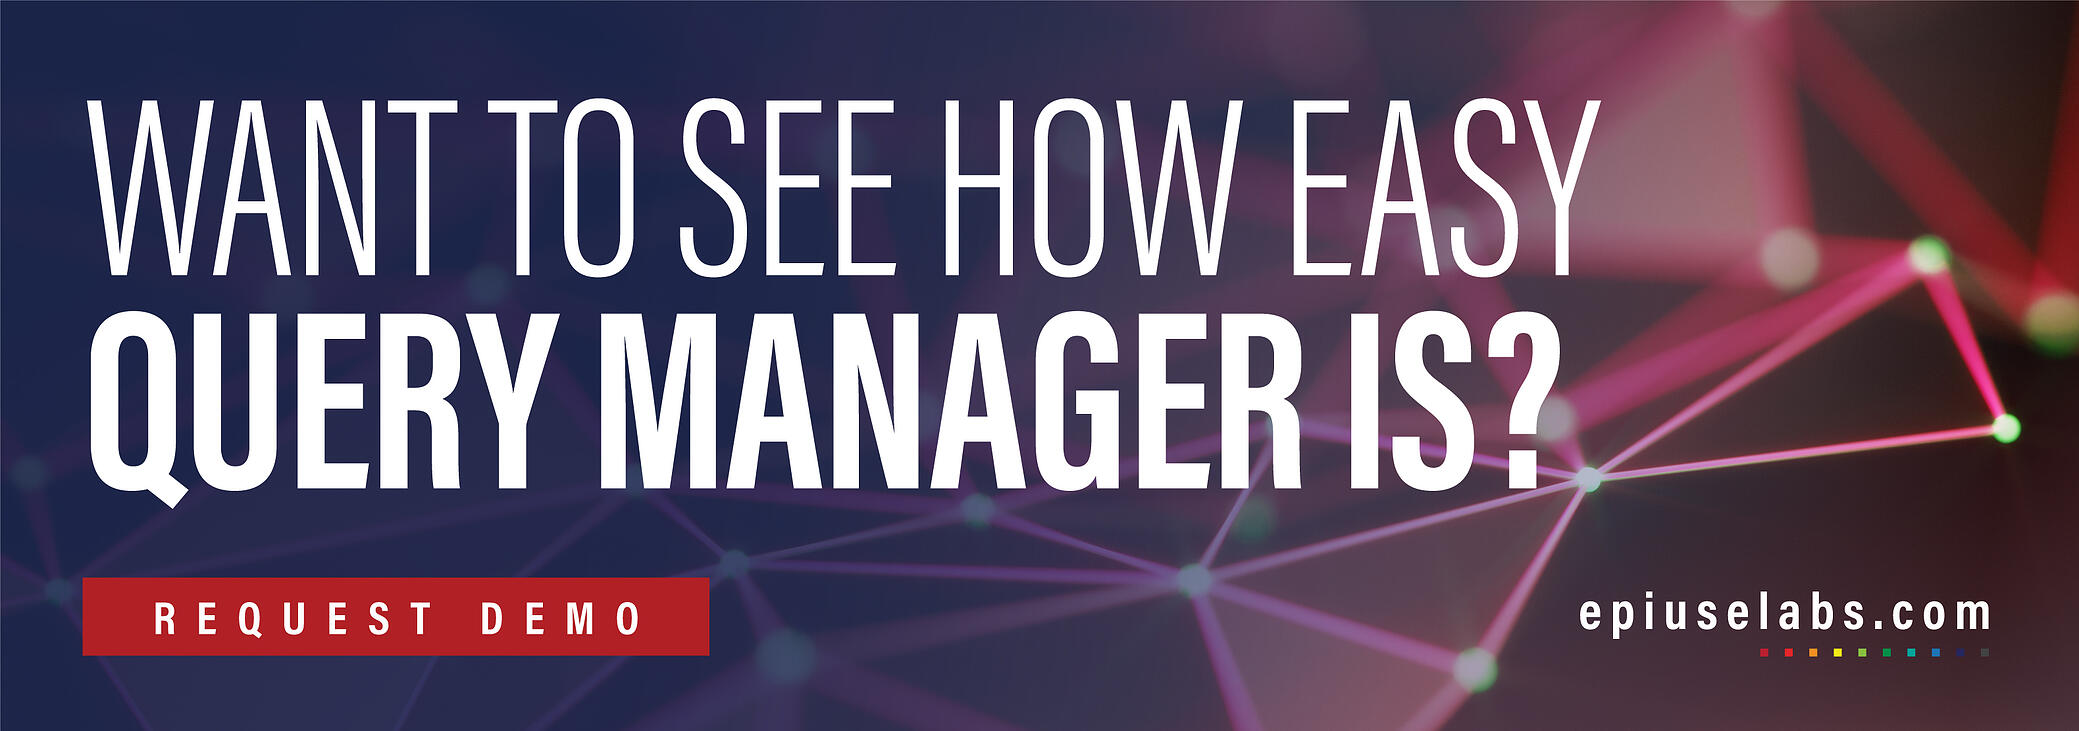 Want-to-see-how-easy-Query-Manager-is_V2